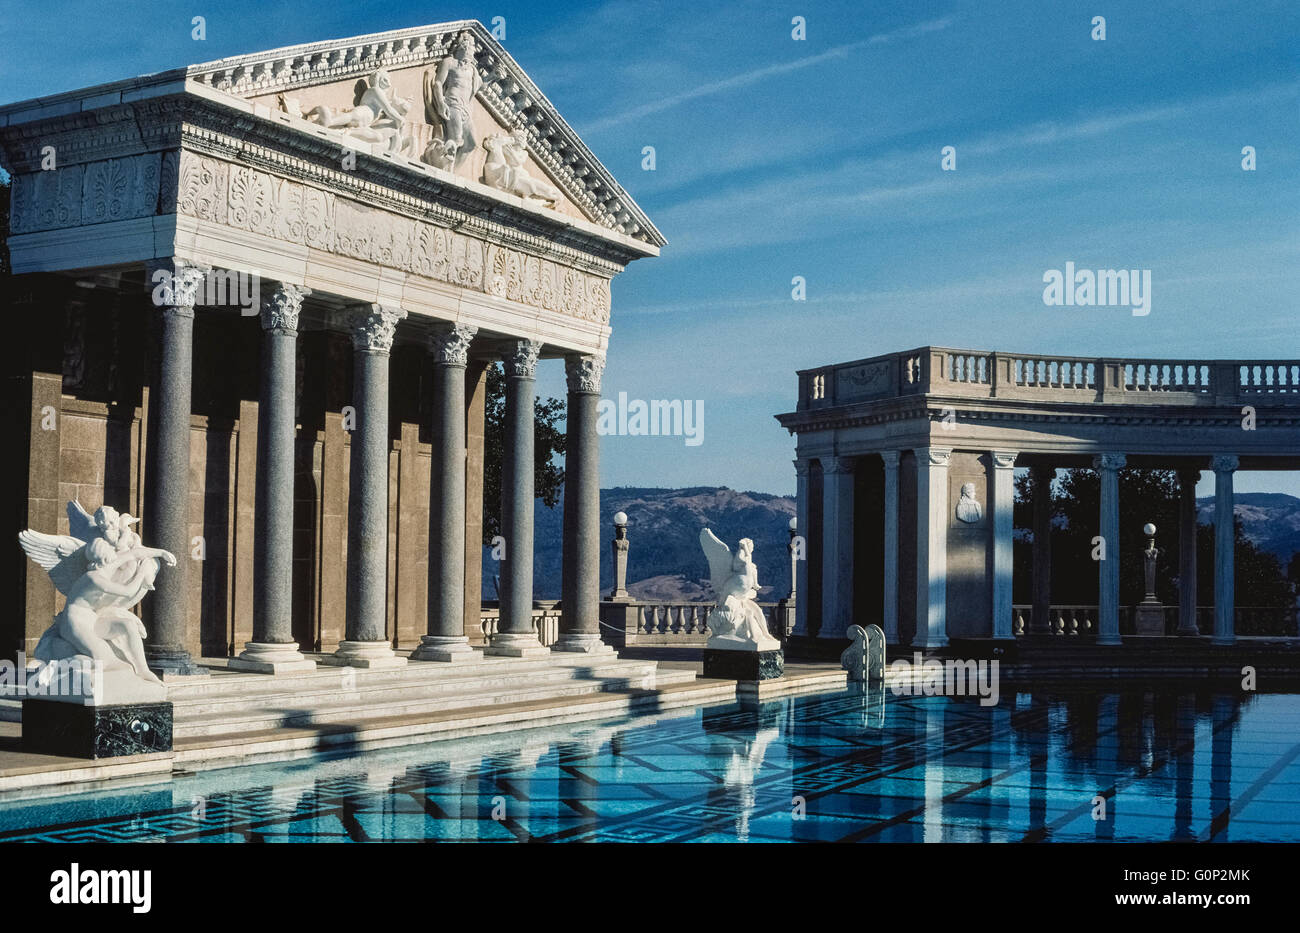 The facade of an ancient Roman temple is the centerpiece of a vast outdoor swimming pool at Hearst Castle, the regal - Stock Image